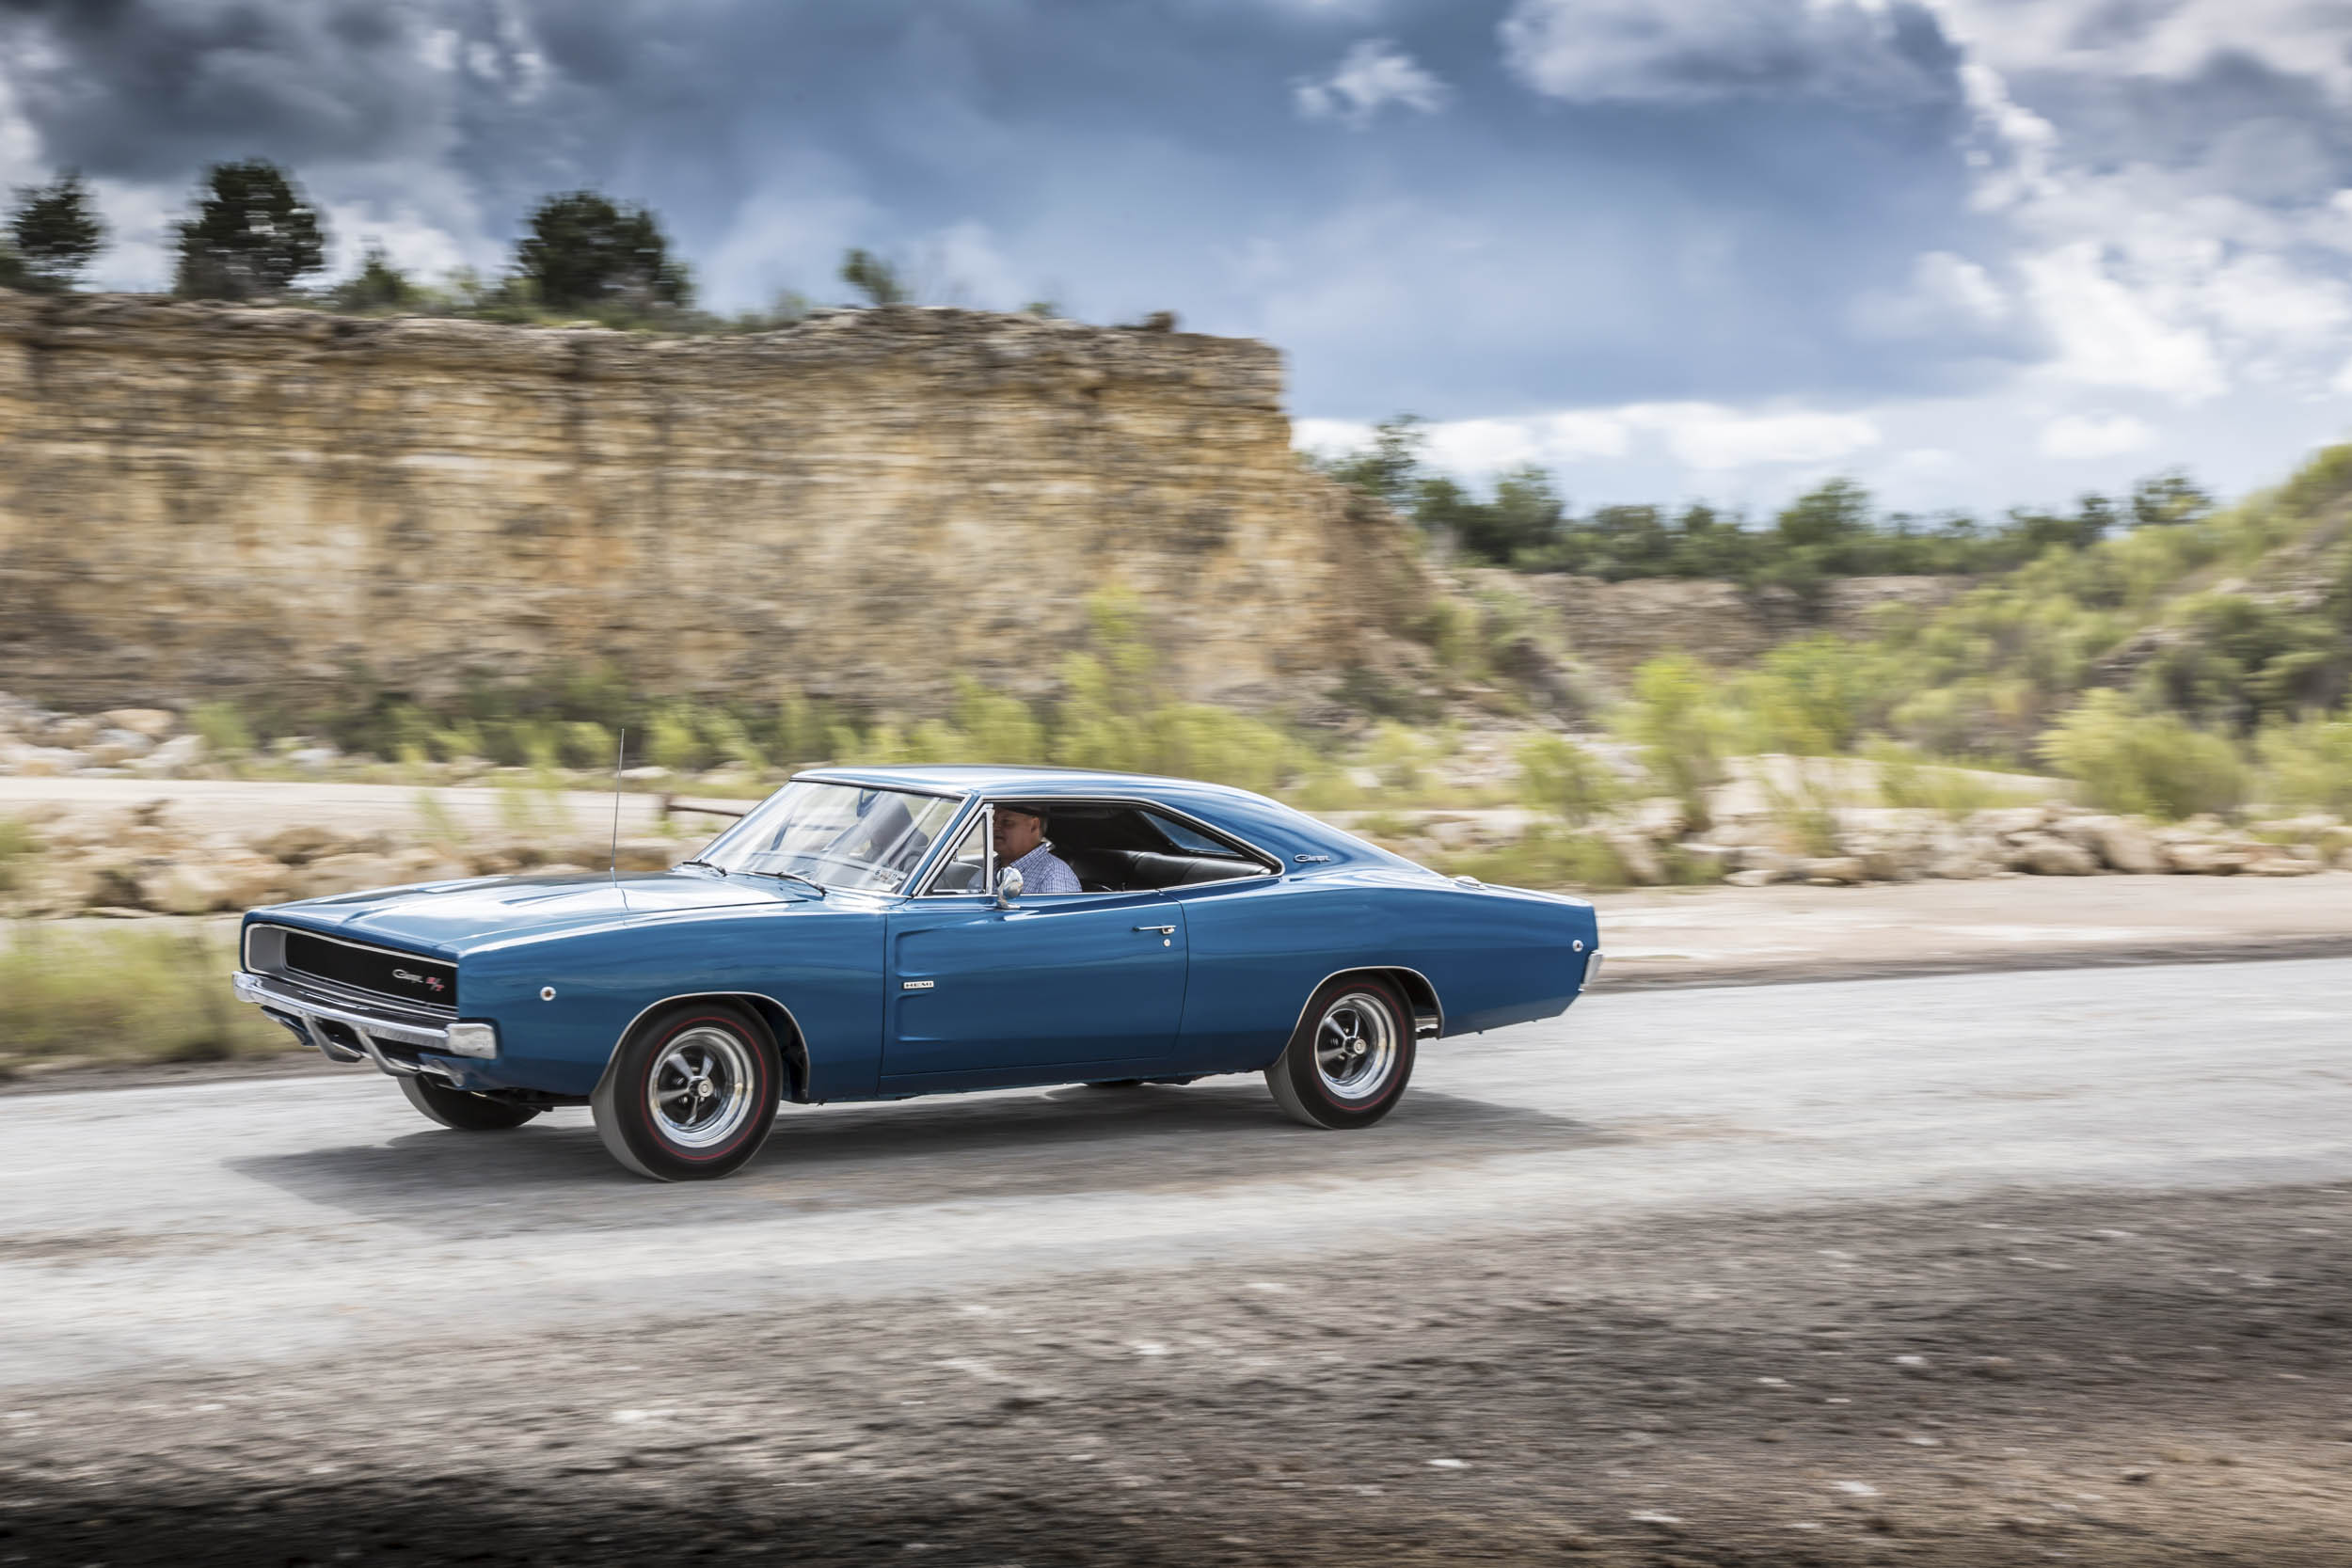 1968 Dodge Charger R/T driving profile